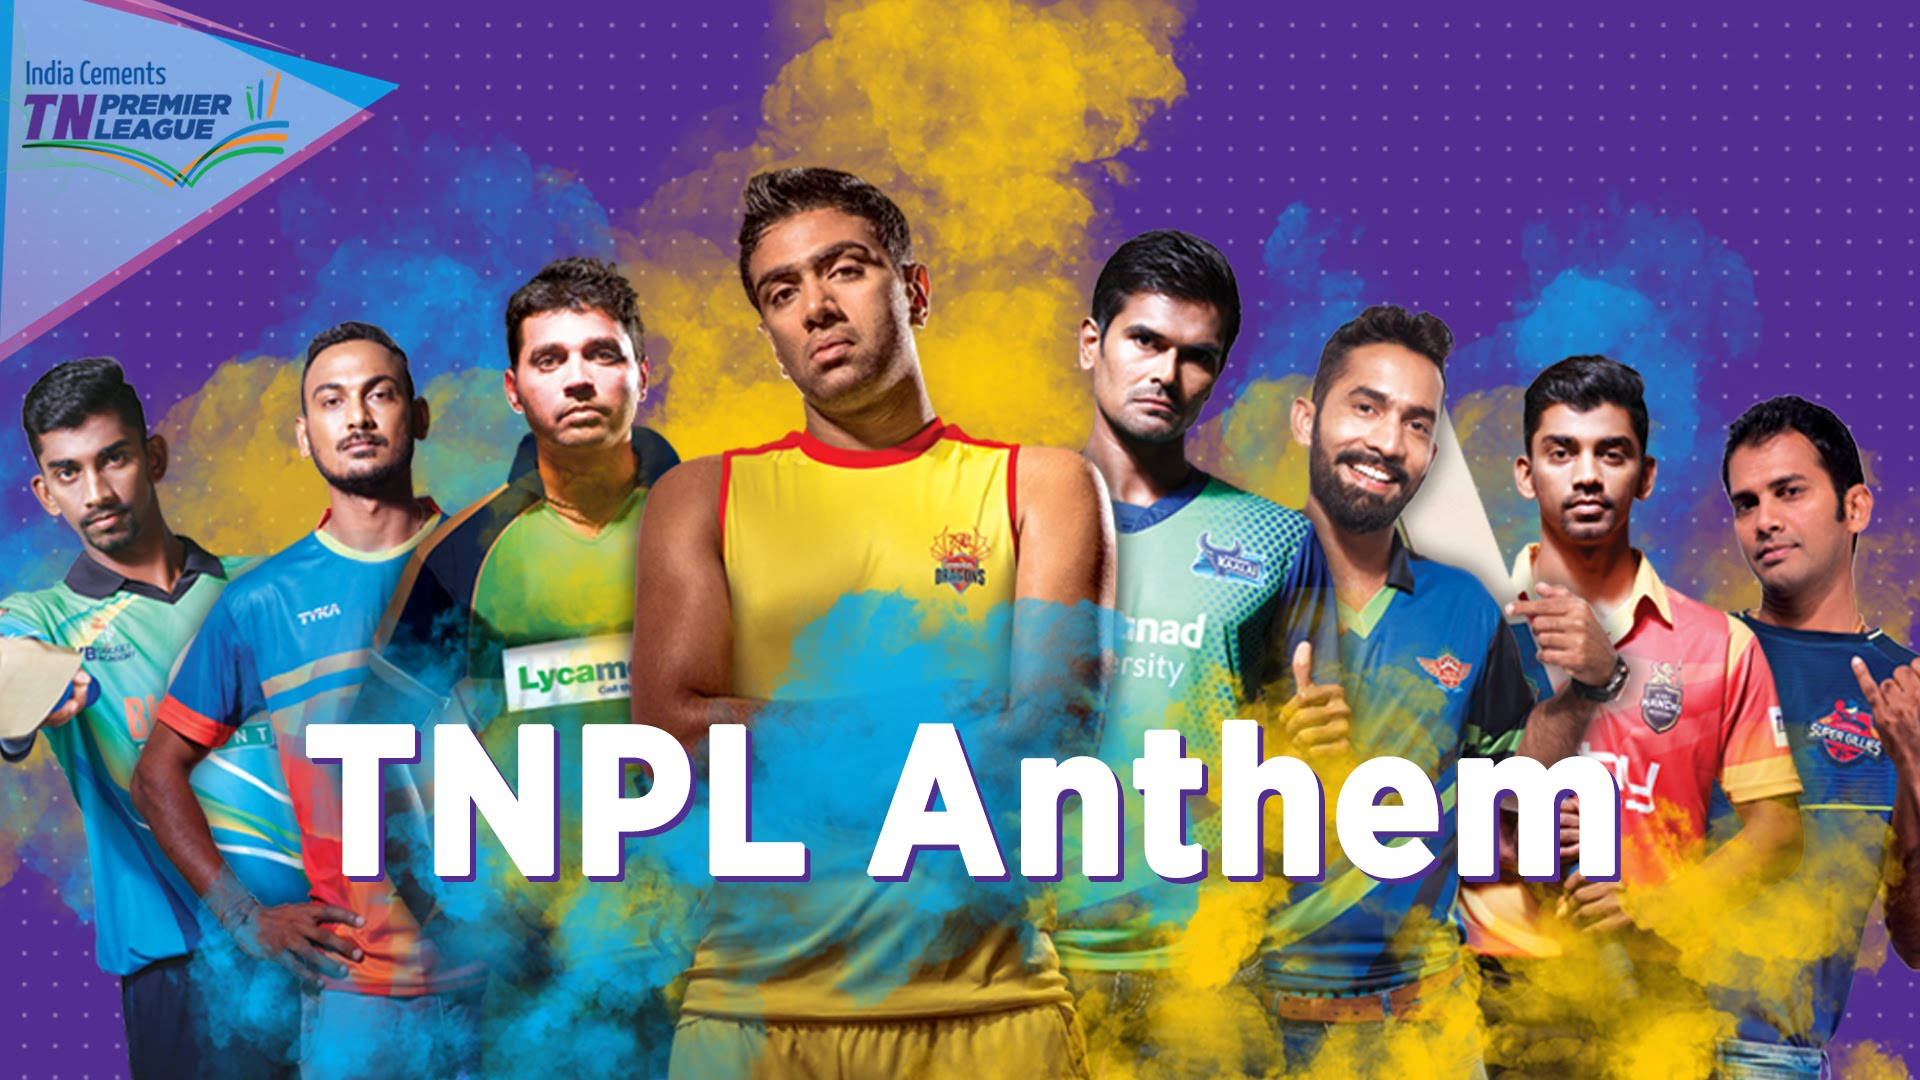 How Successful And Enterprising Was The 2018 Tamil Nadu Premier League